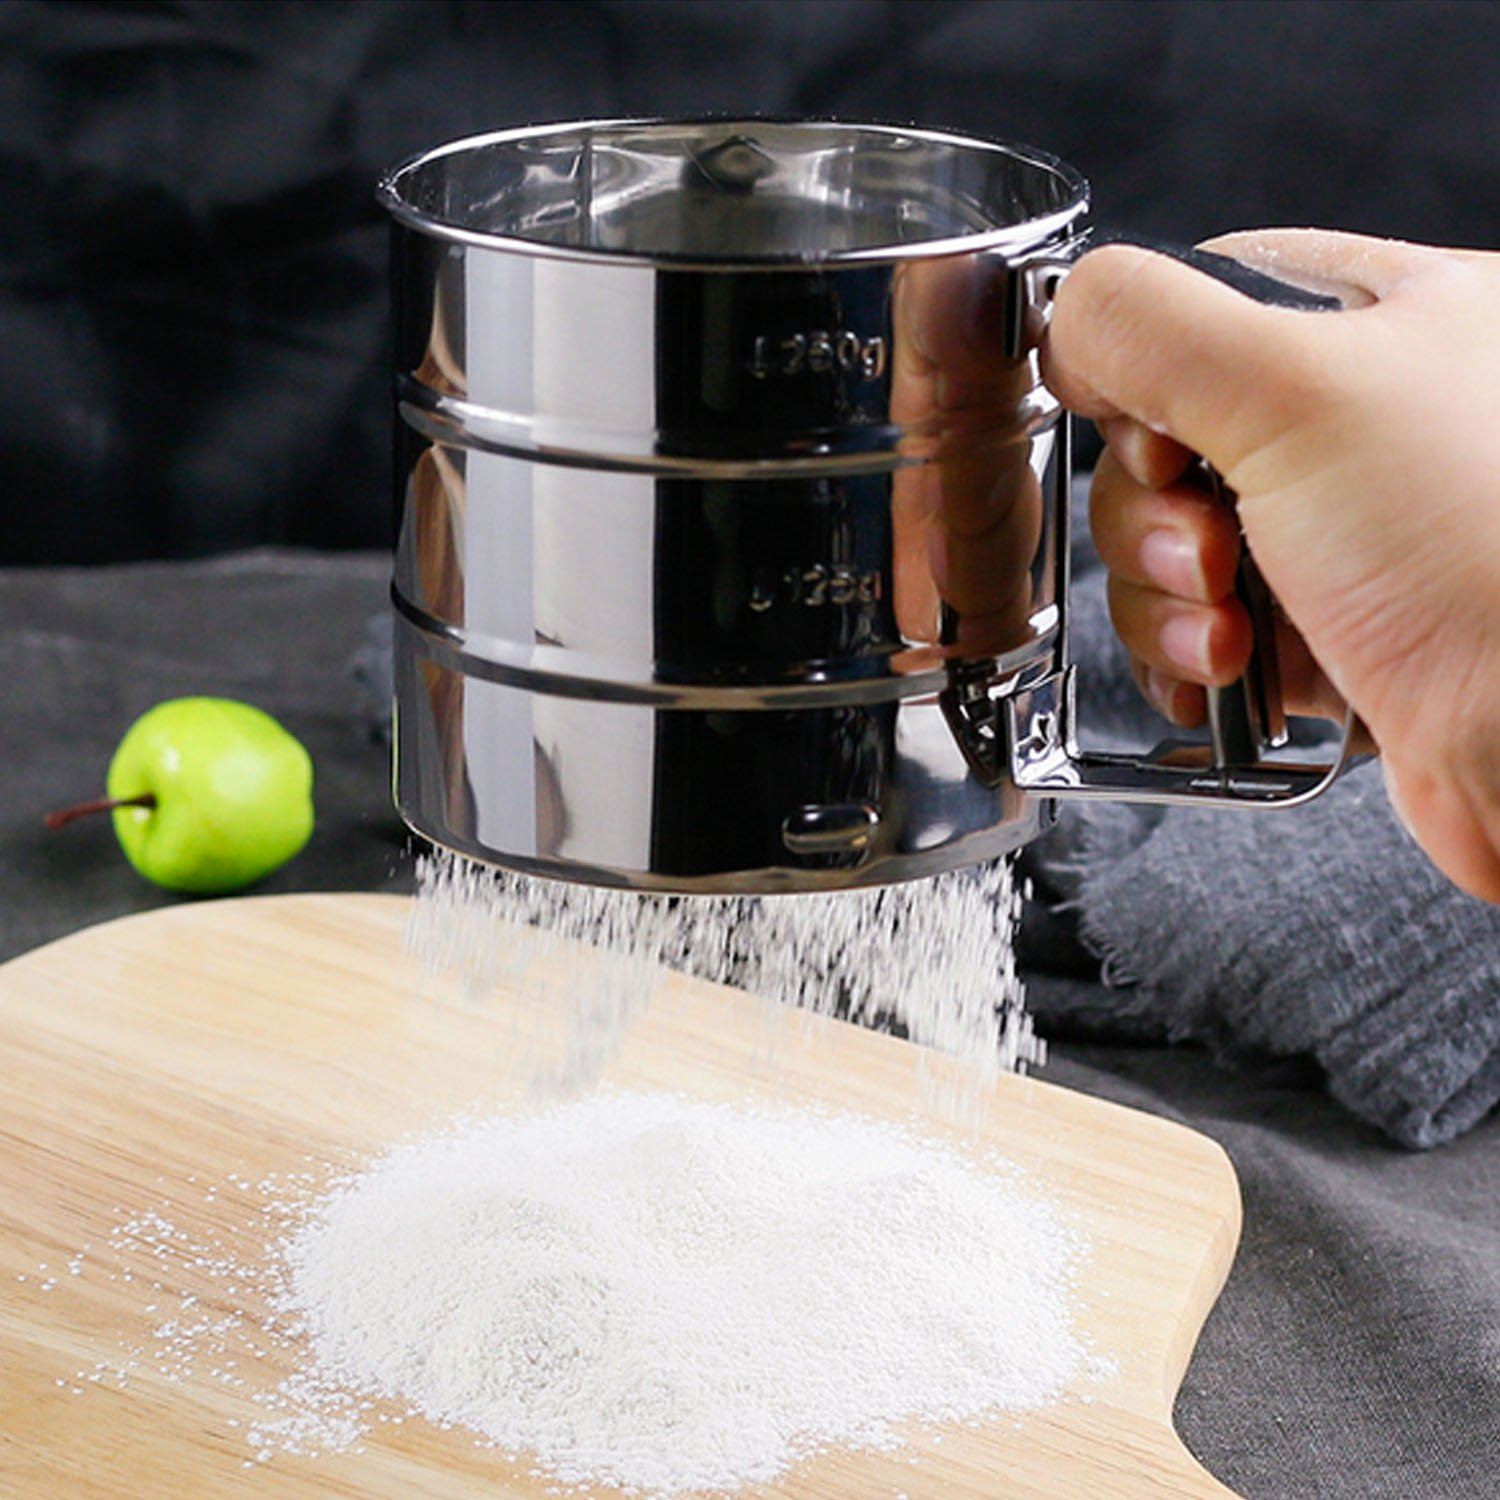 Stainless Steel Mesh Sugar Coffee Flour Shaker Sifter Sieve Tool Cup by Gosear (Image #2)